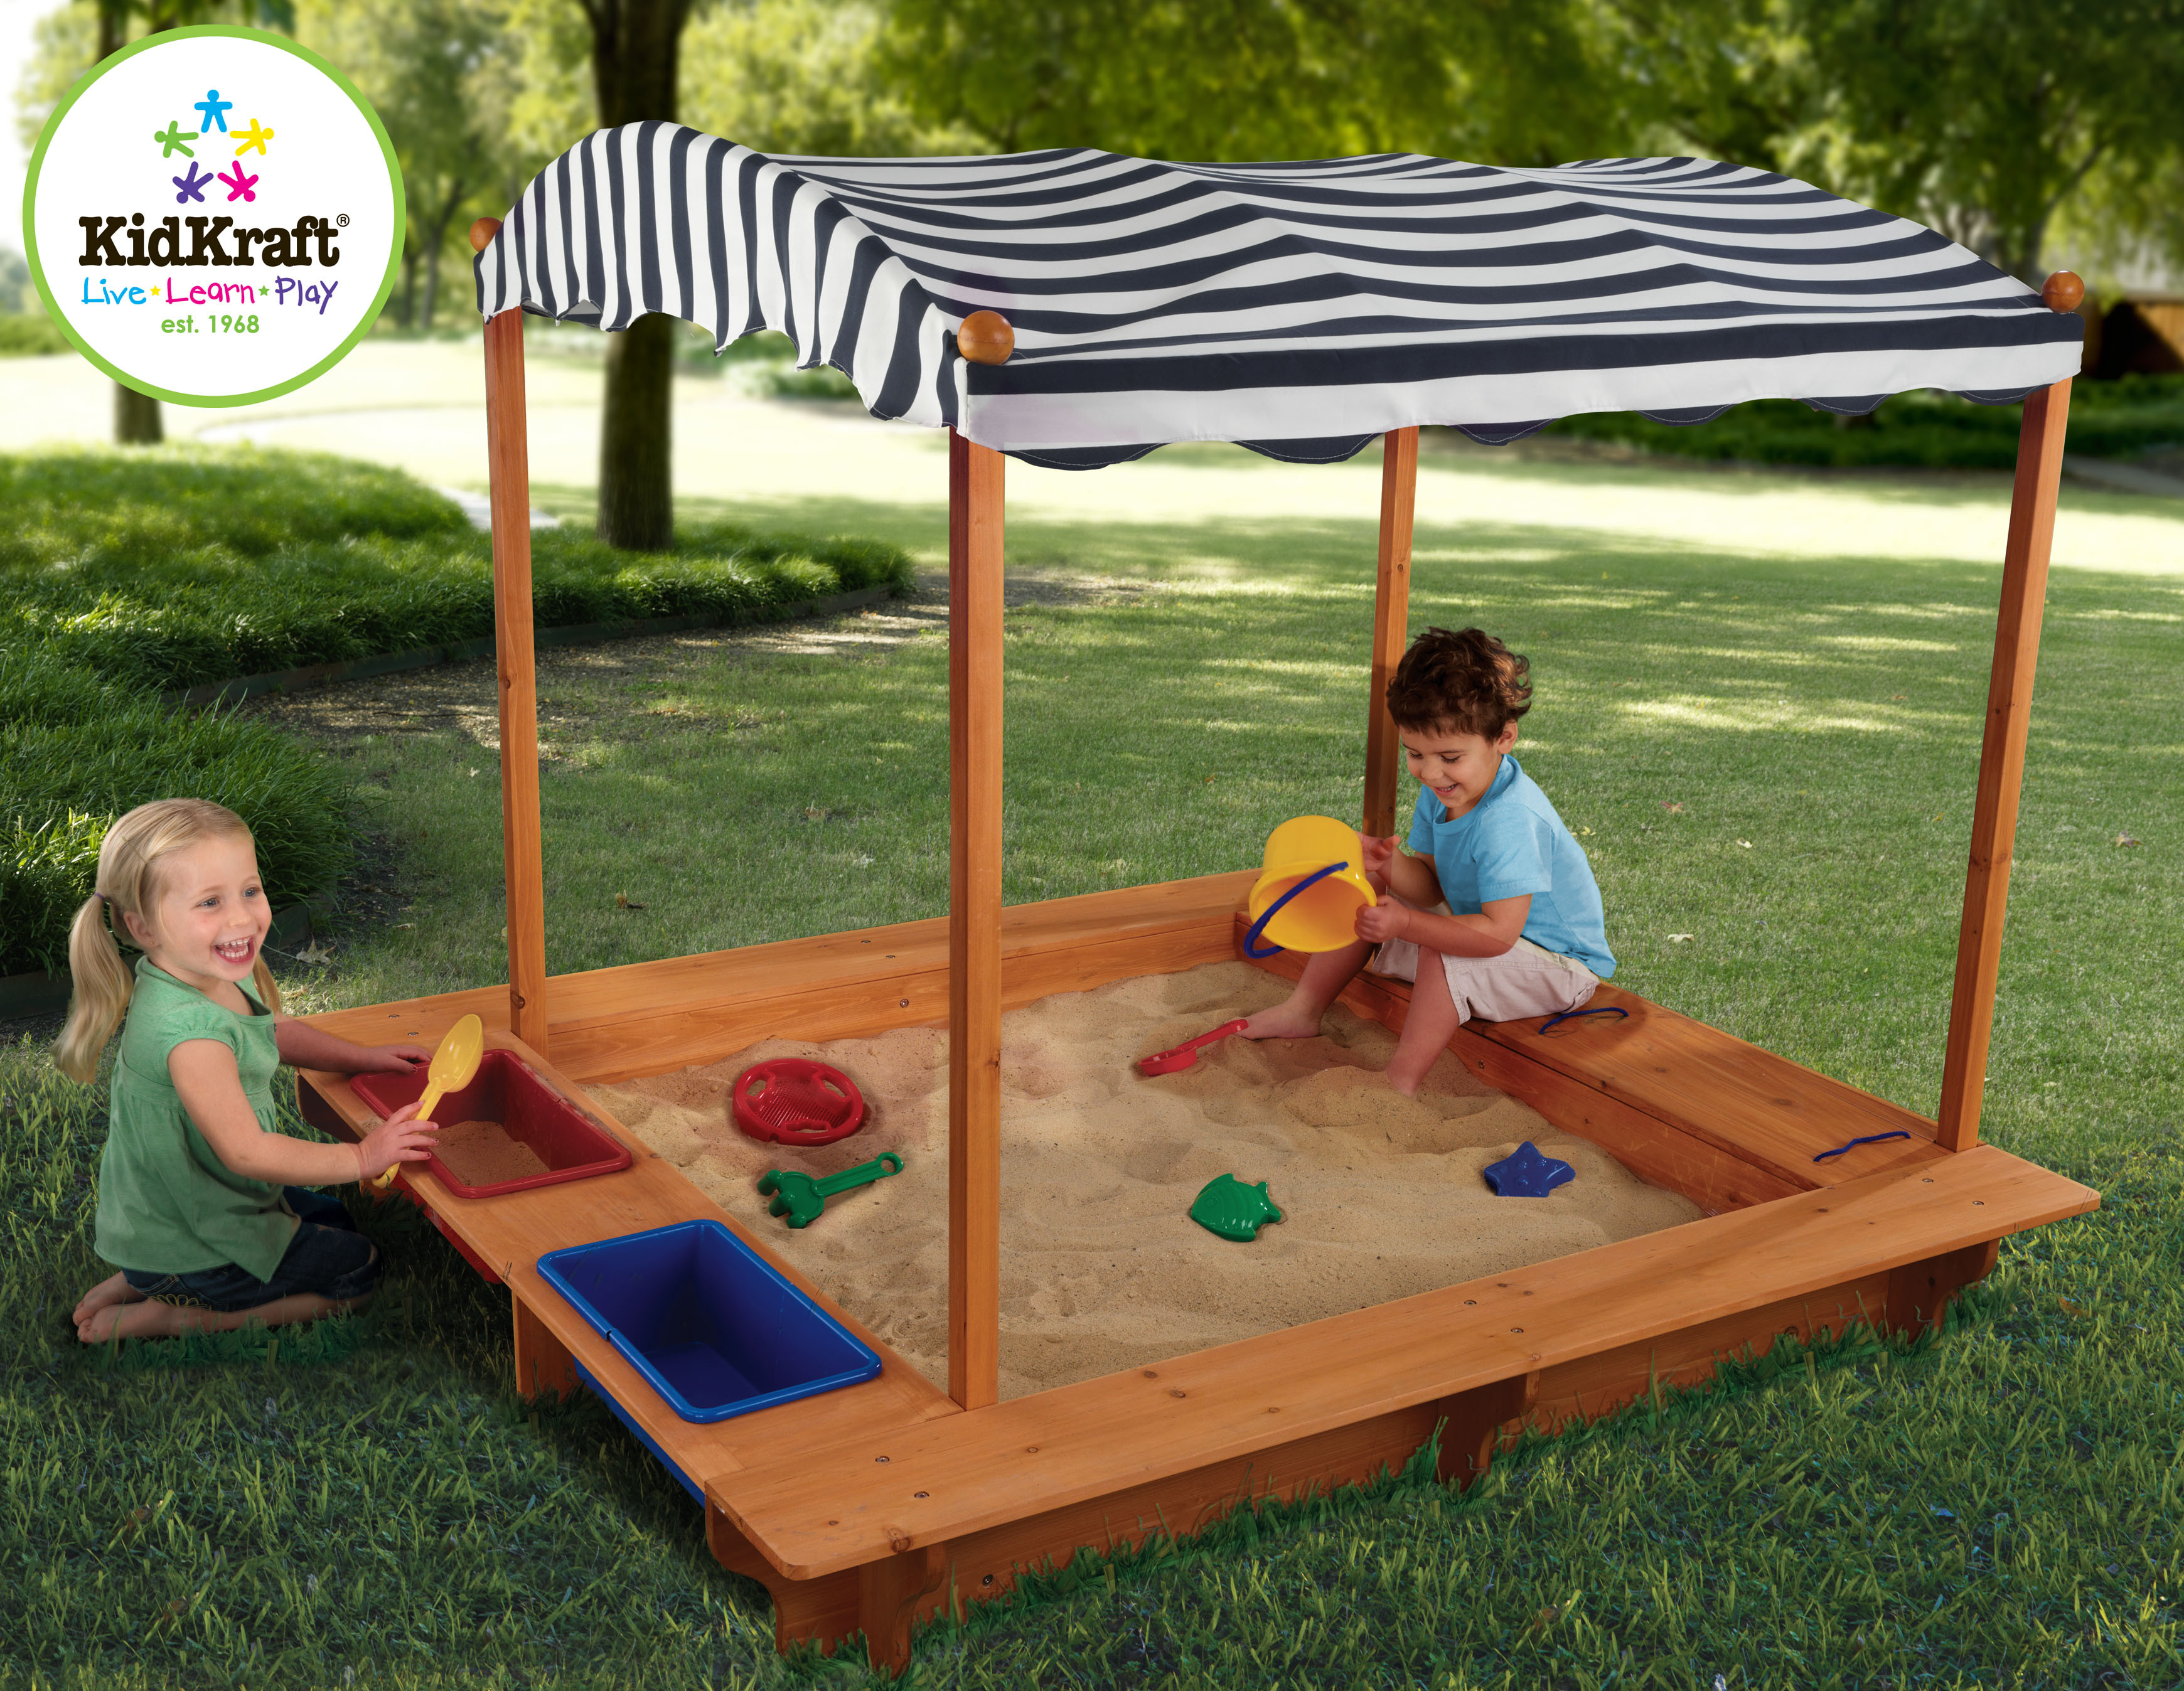 Best ideas about DIY Kids Sandbox . Save or Pin KidKraft Outdoor Sandbox with Canopy by OJ merce 165 Now.